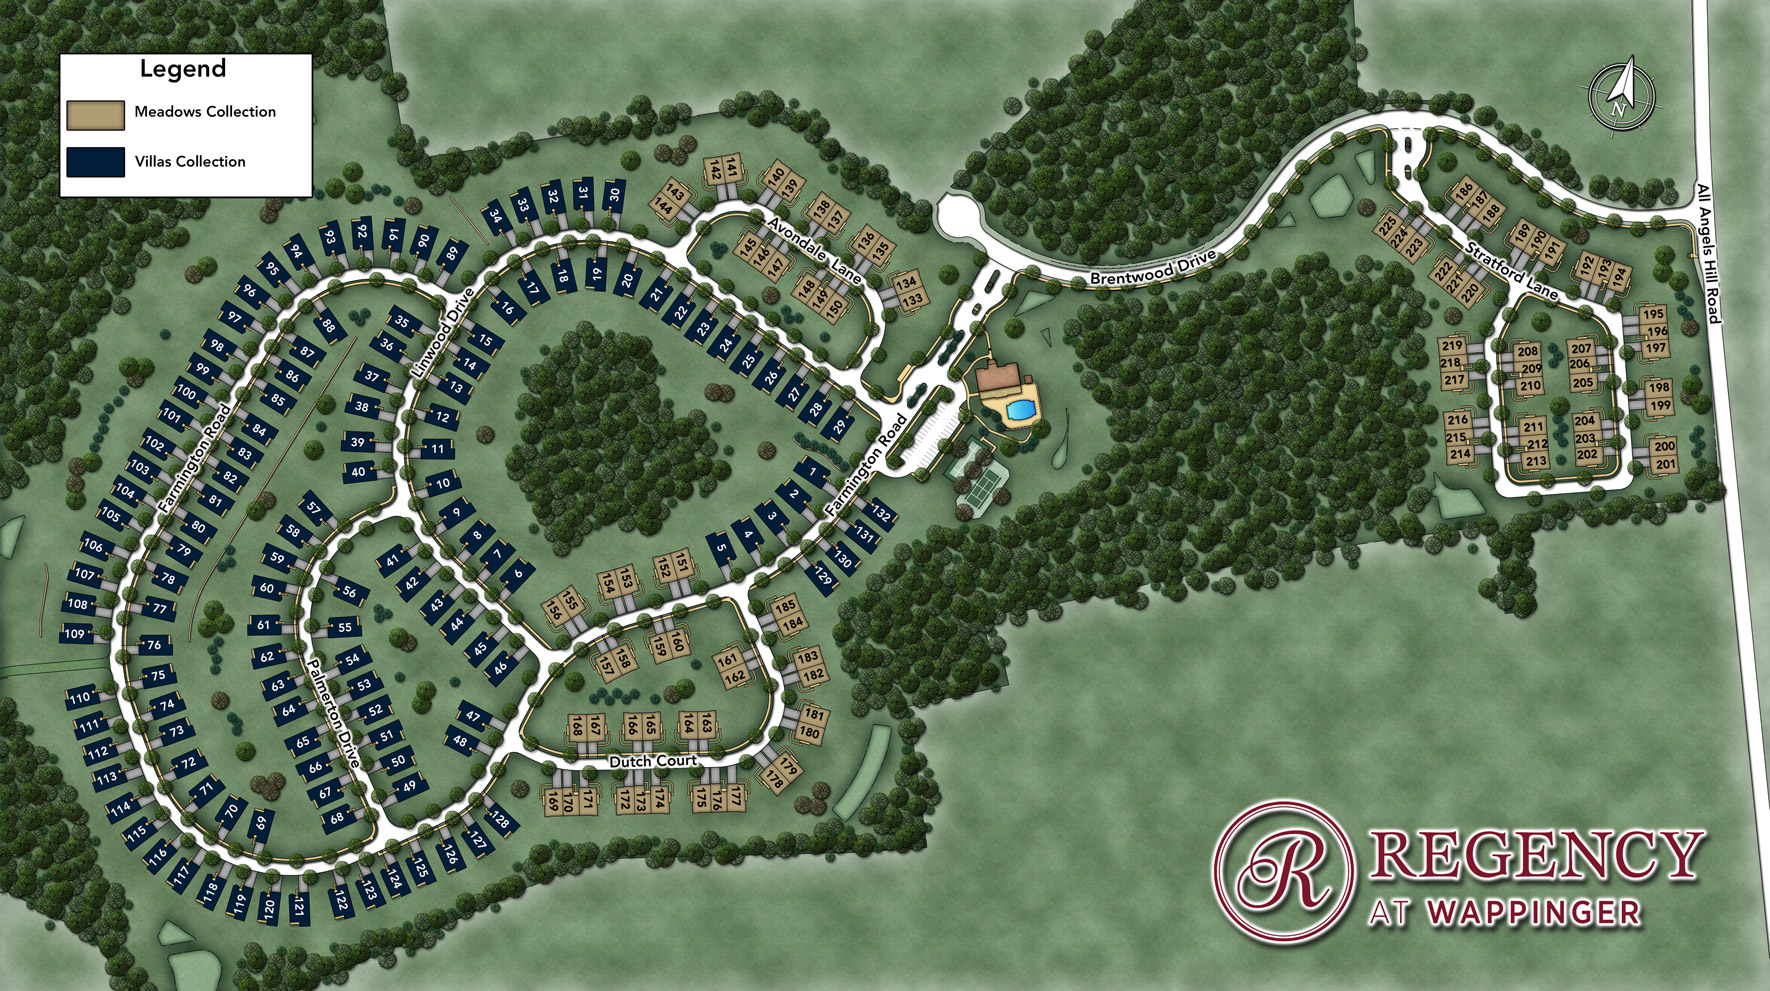 Regency at Wappinger - Meadows Site Plan